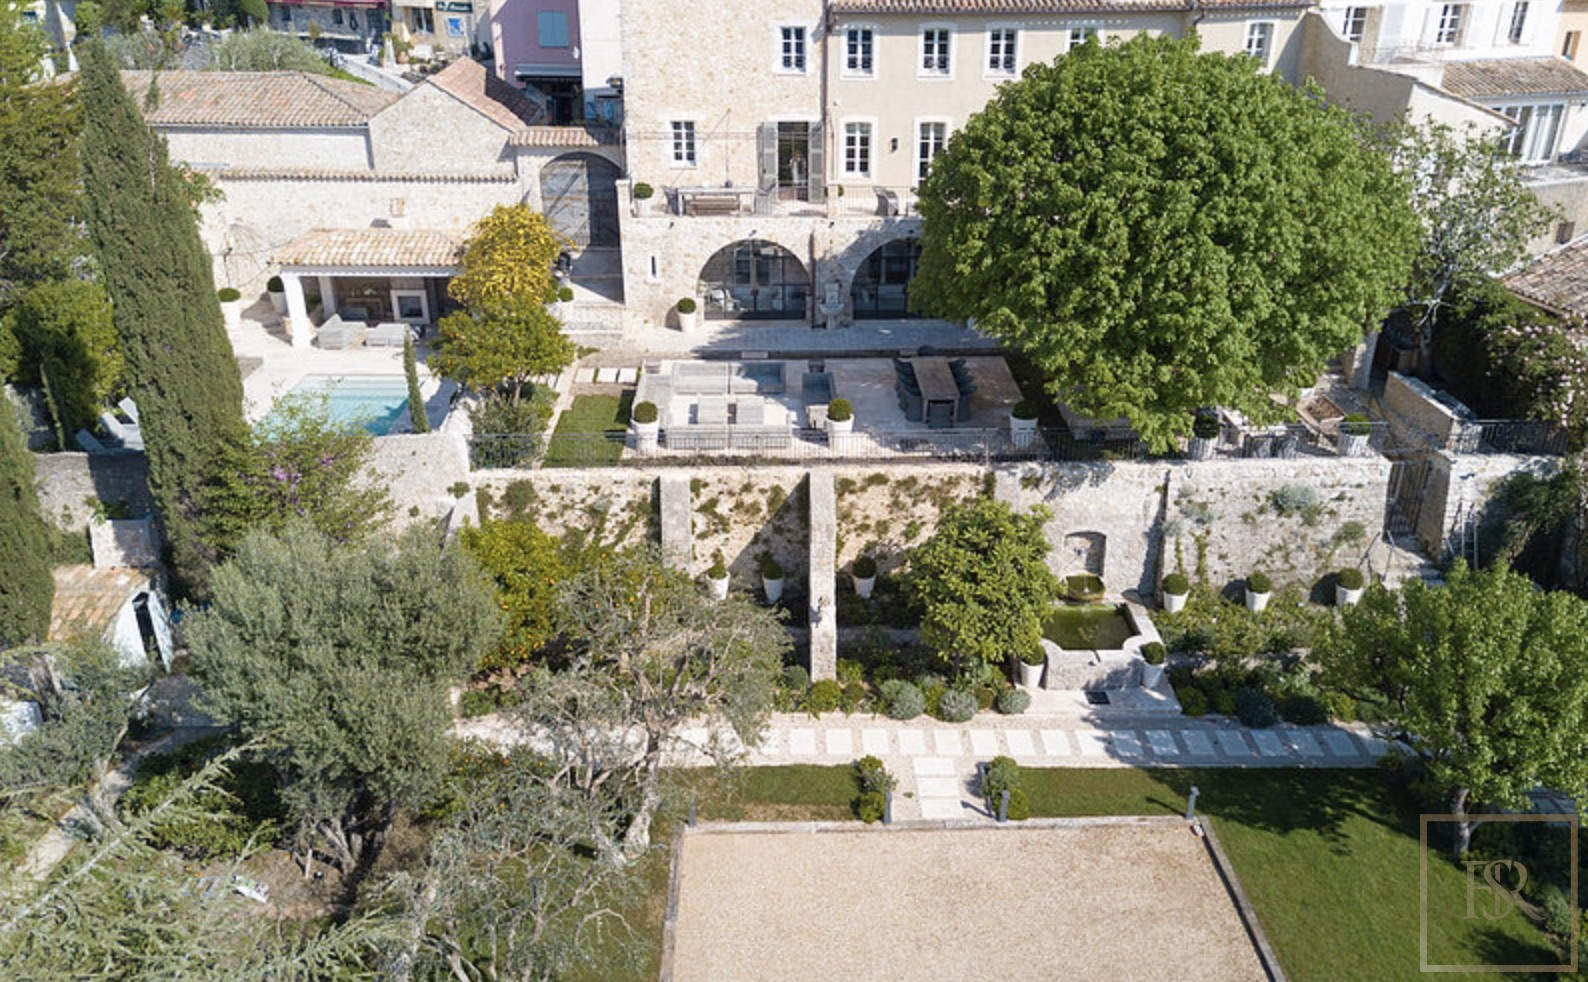 For super rich ultra luxury real estate properties homes, most expensive houses, rent unique penthouse apartment and ultimate villa in Mougins France for rent holiday French riviera